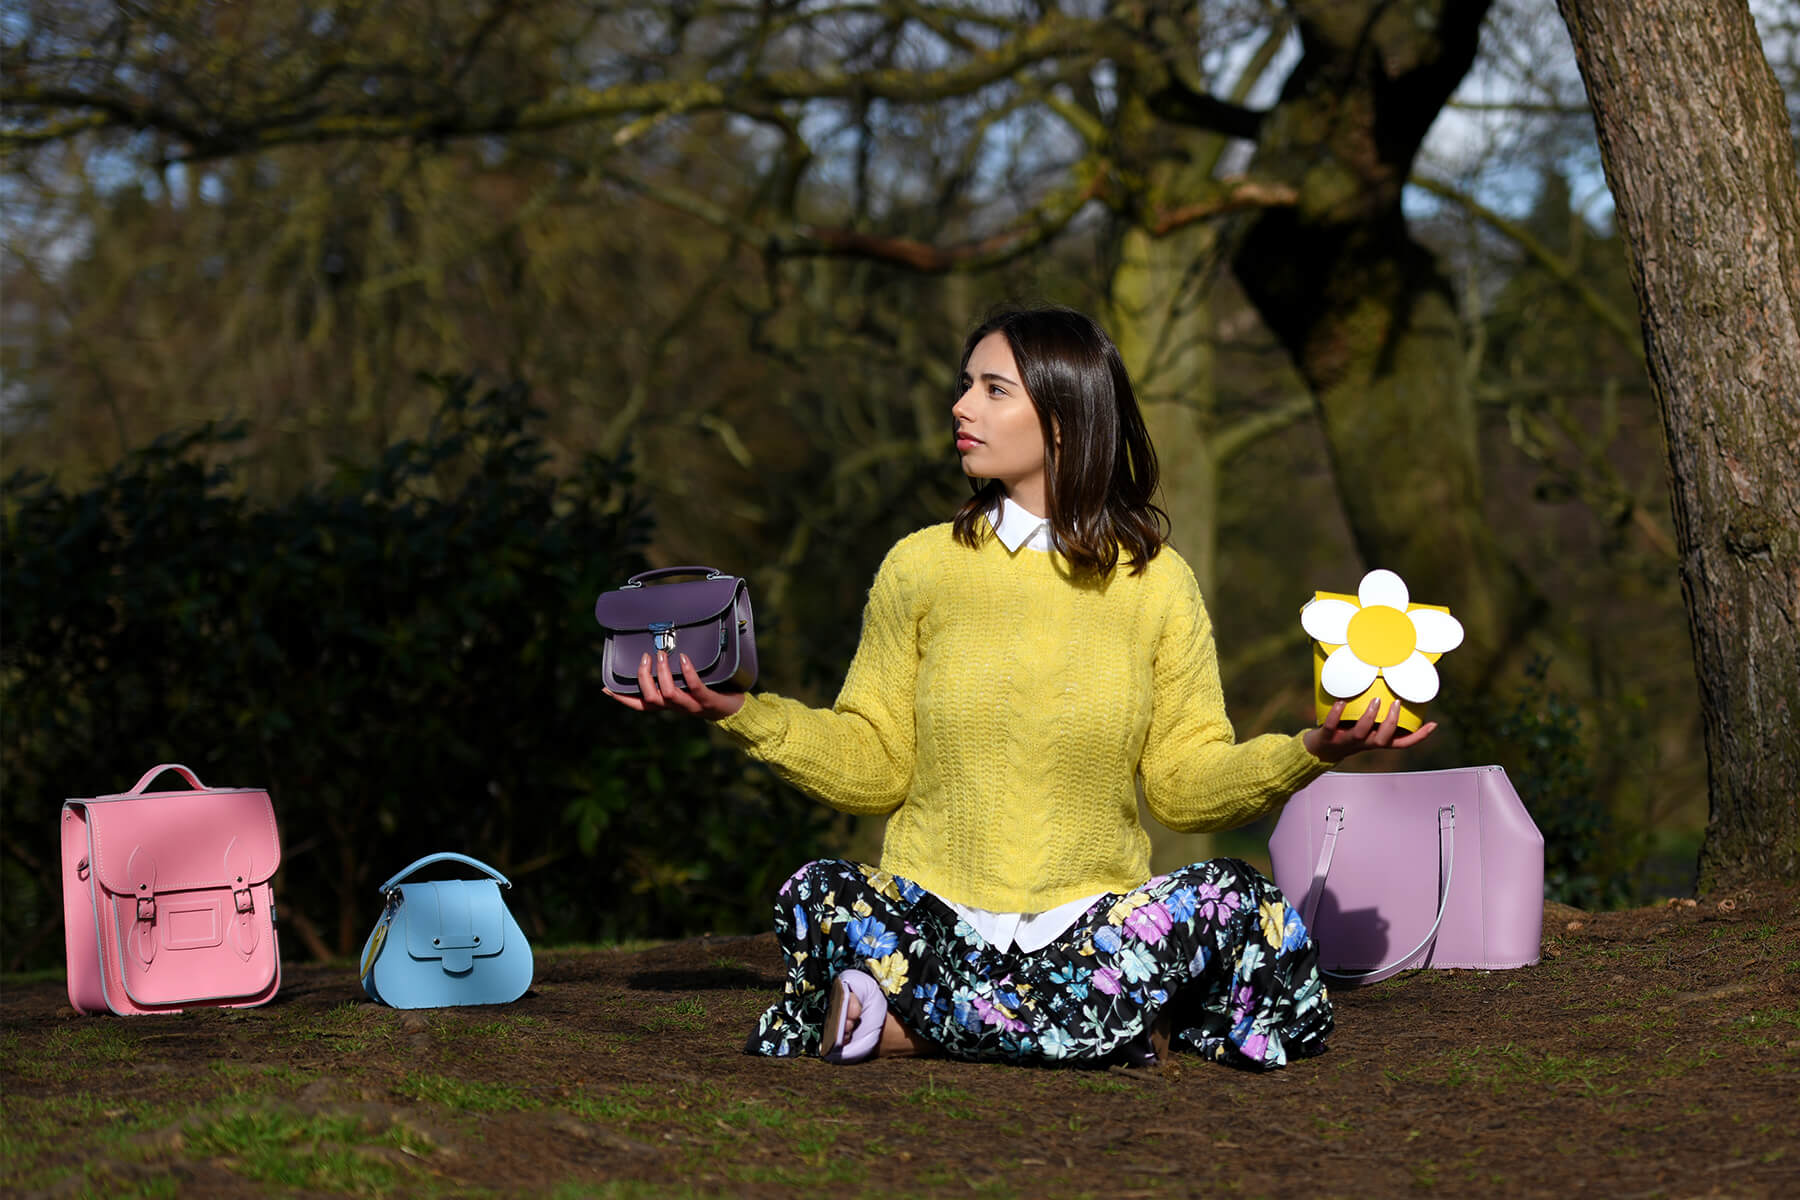 Woman Sat On The Ground Holding bags and surrounded by bags